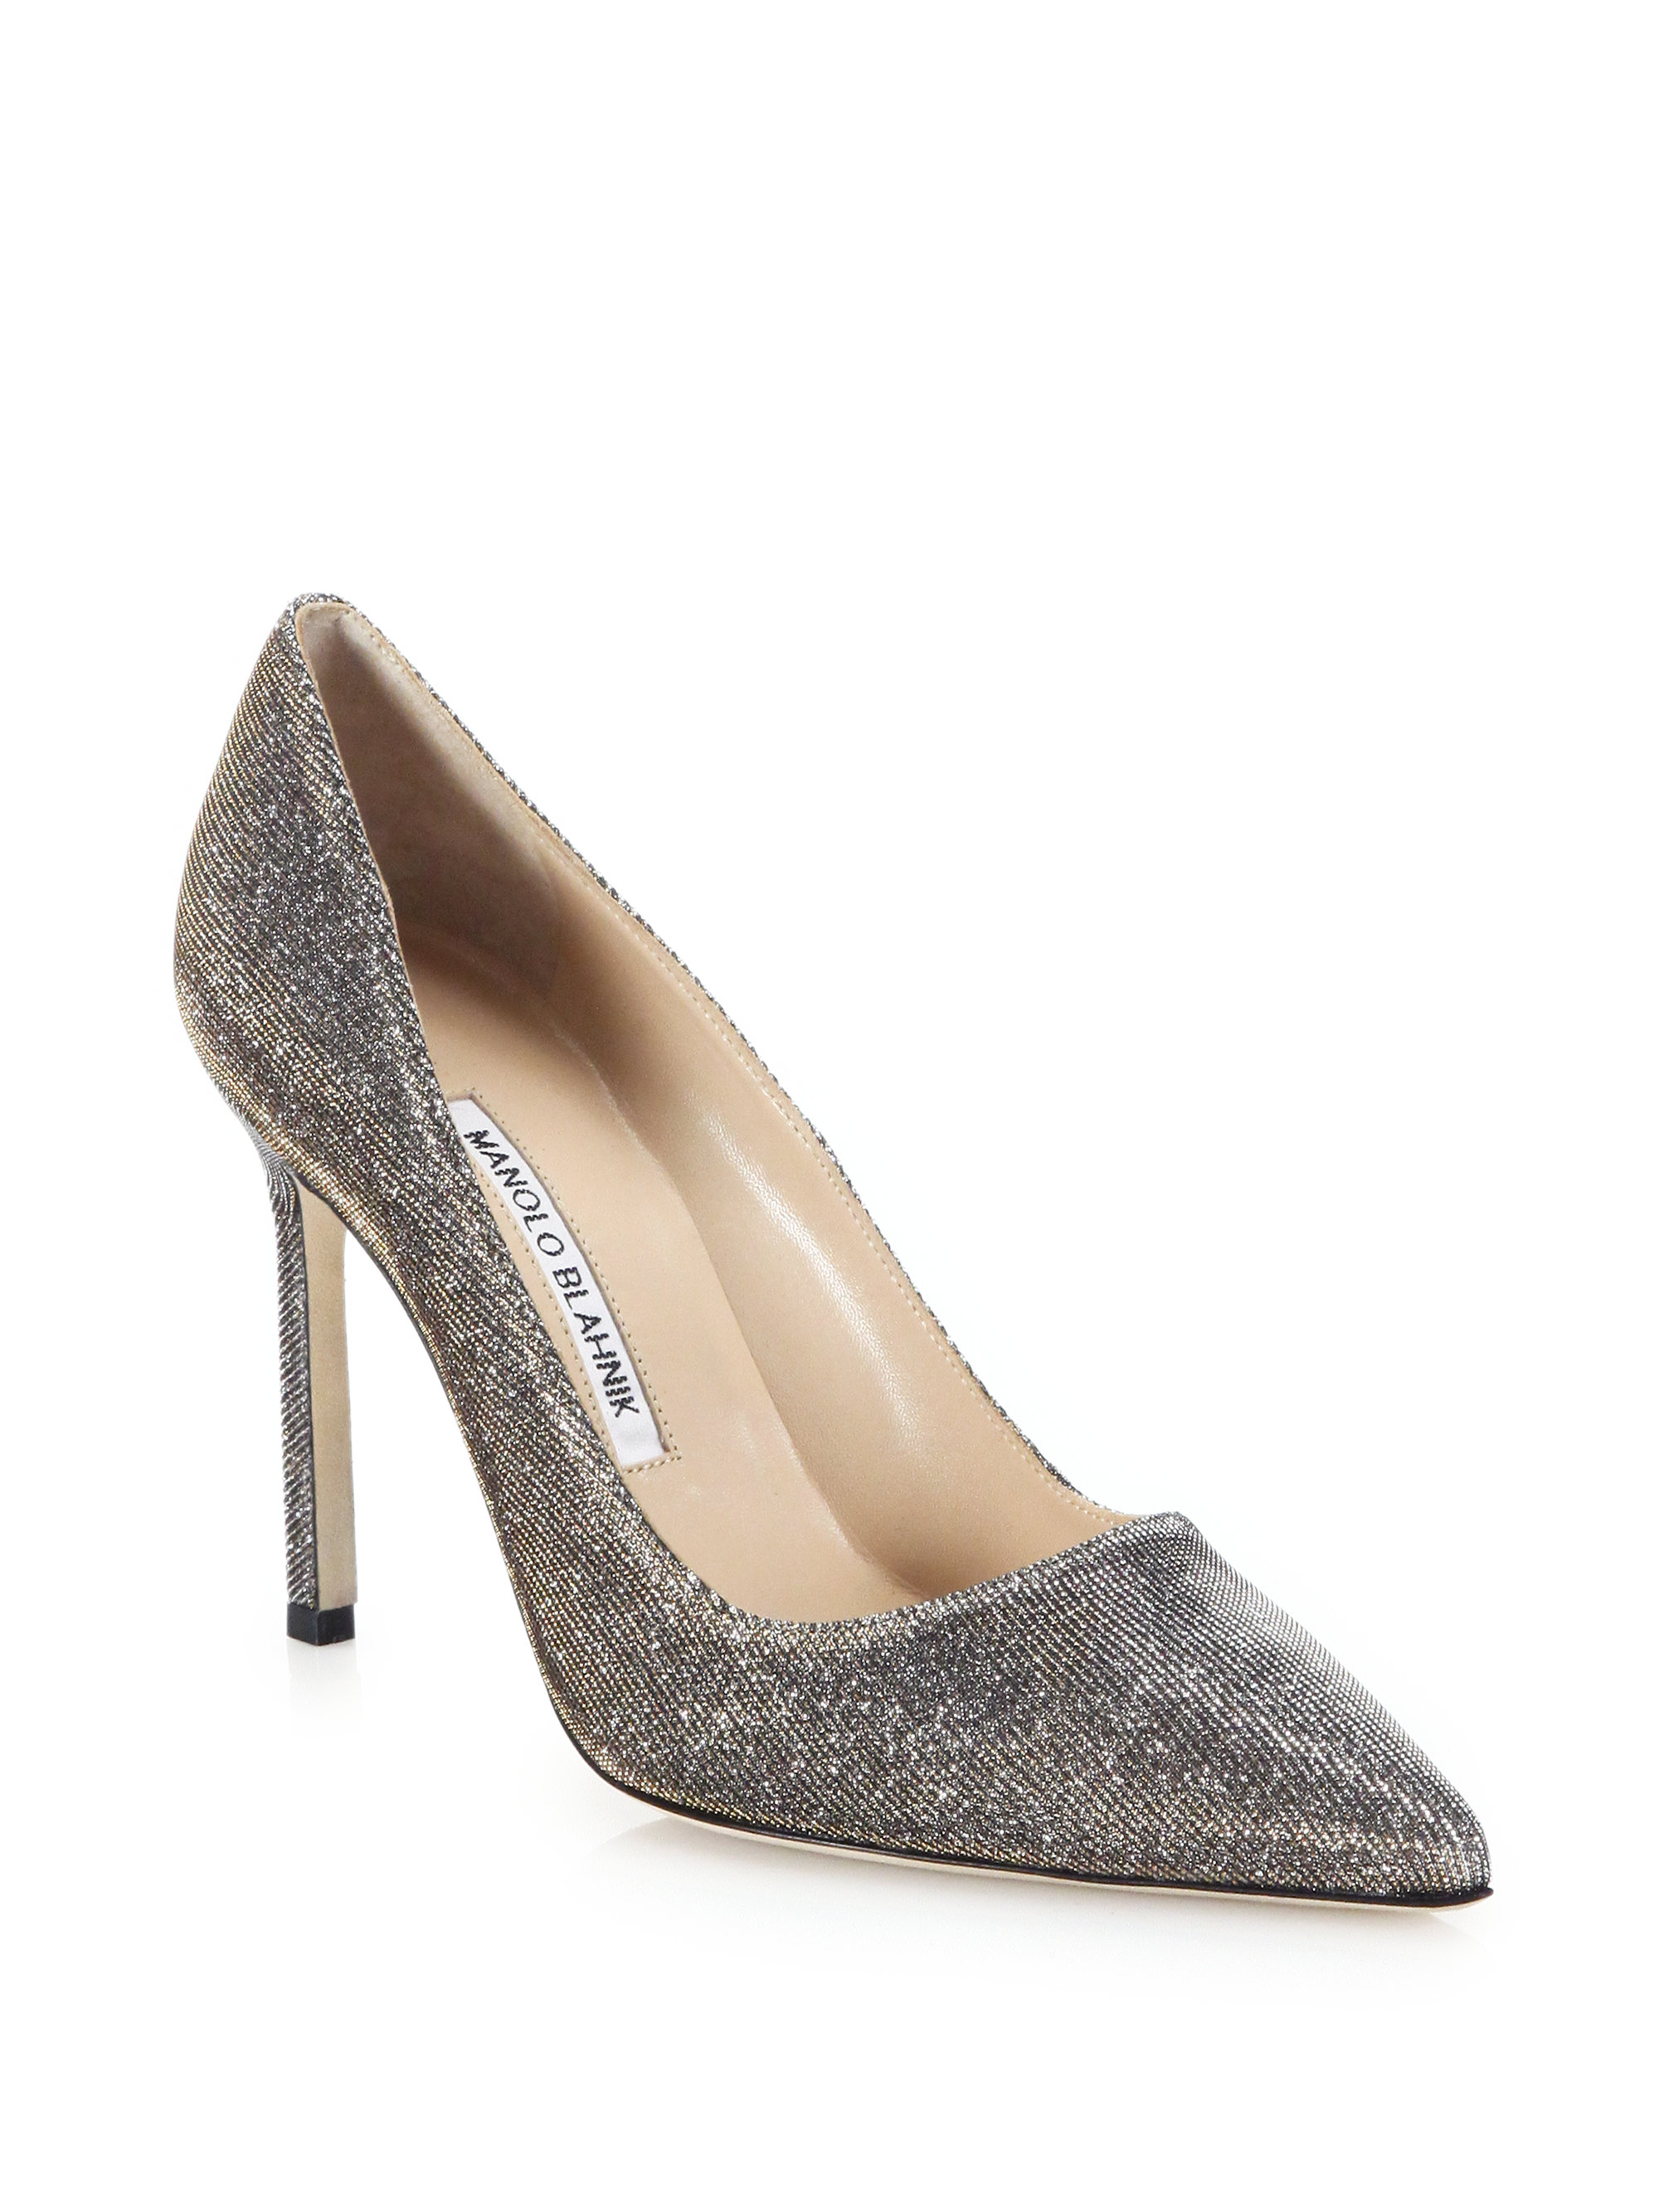 Lyst manolo blahnik bb 105 nottorno mesh pumps in white for Who is manolo blahnik